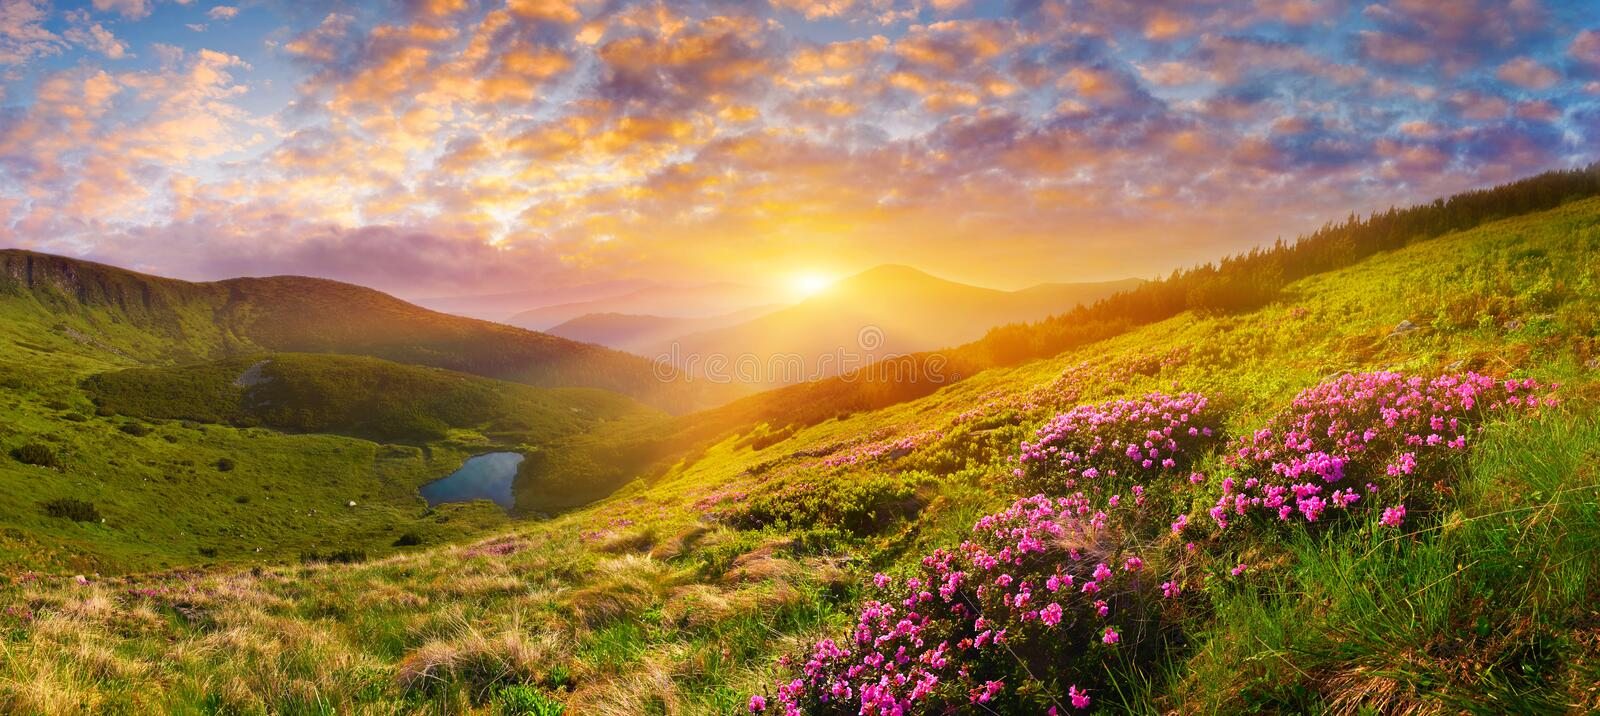 Blooming wild pink flowers and rising sun in highland. stock image